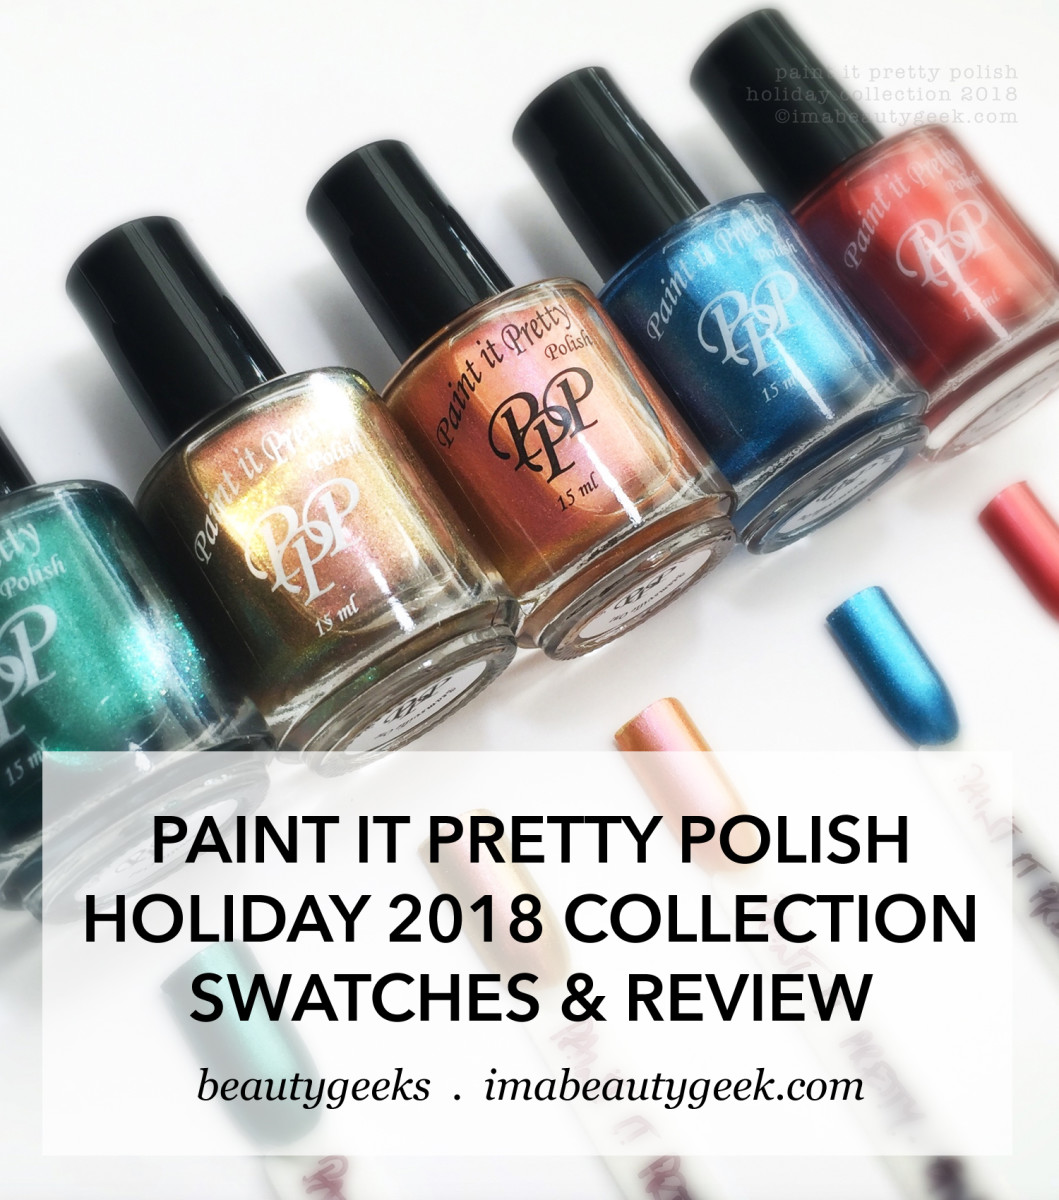 Paint it Pretty Polish Holiday 2018 Collection Swatches